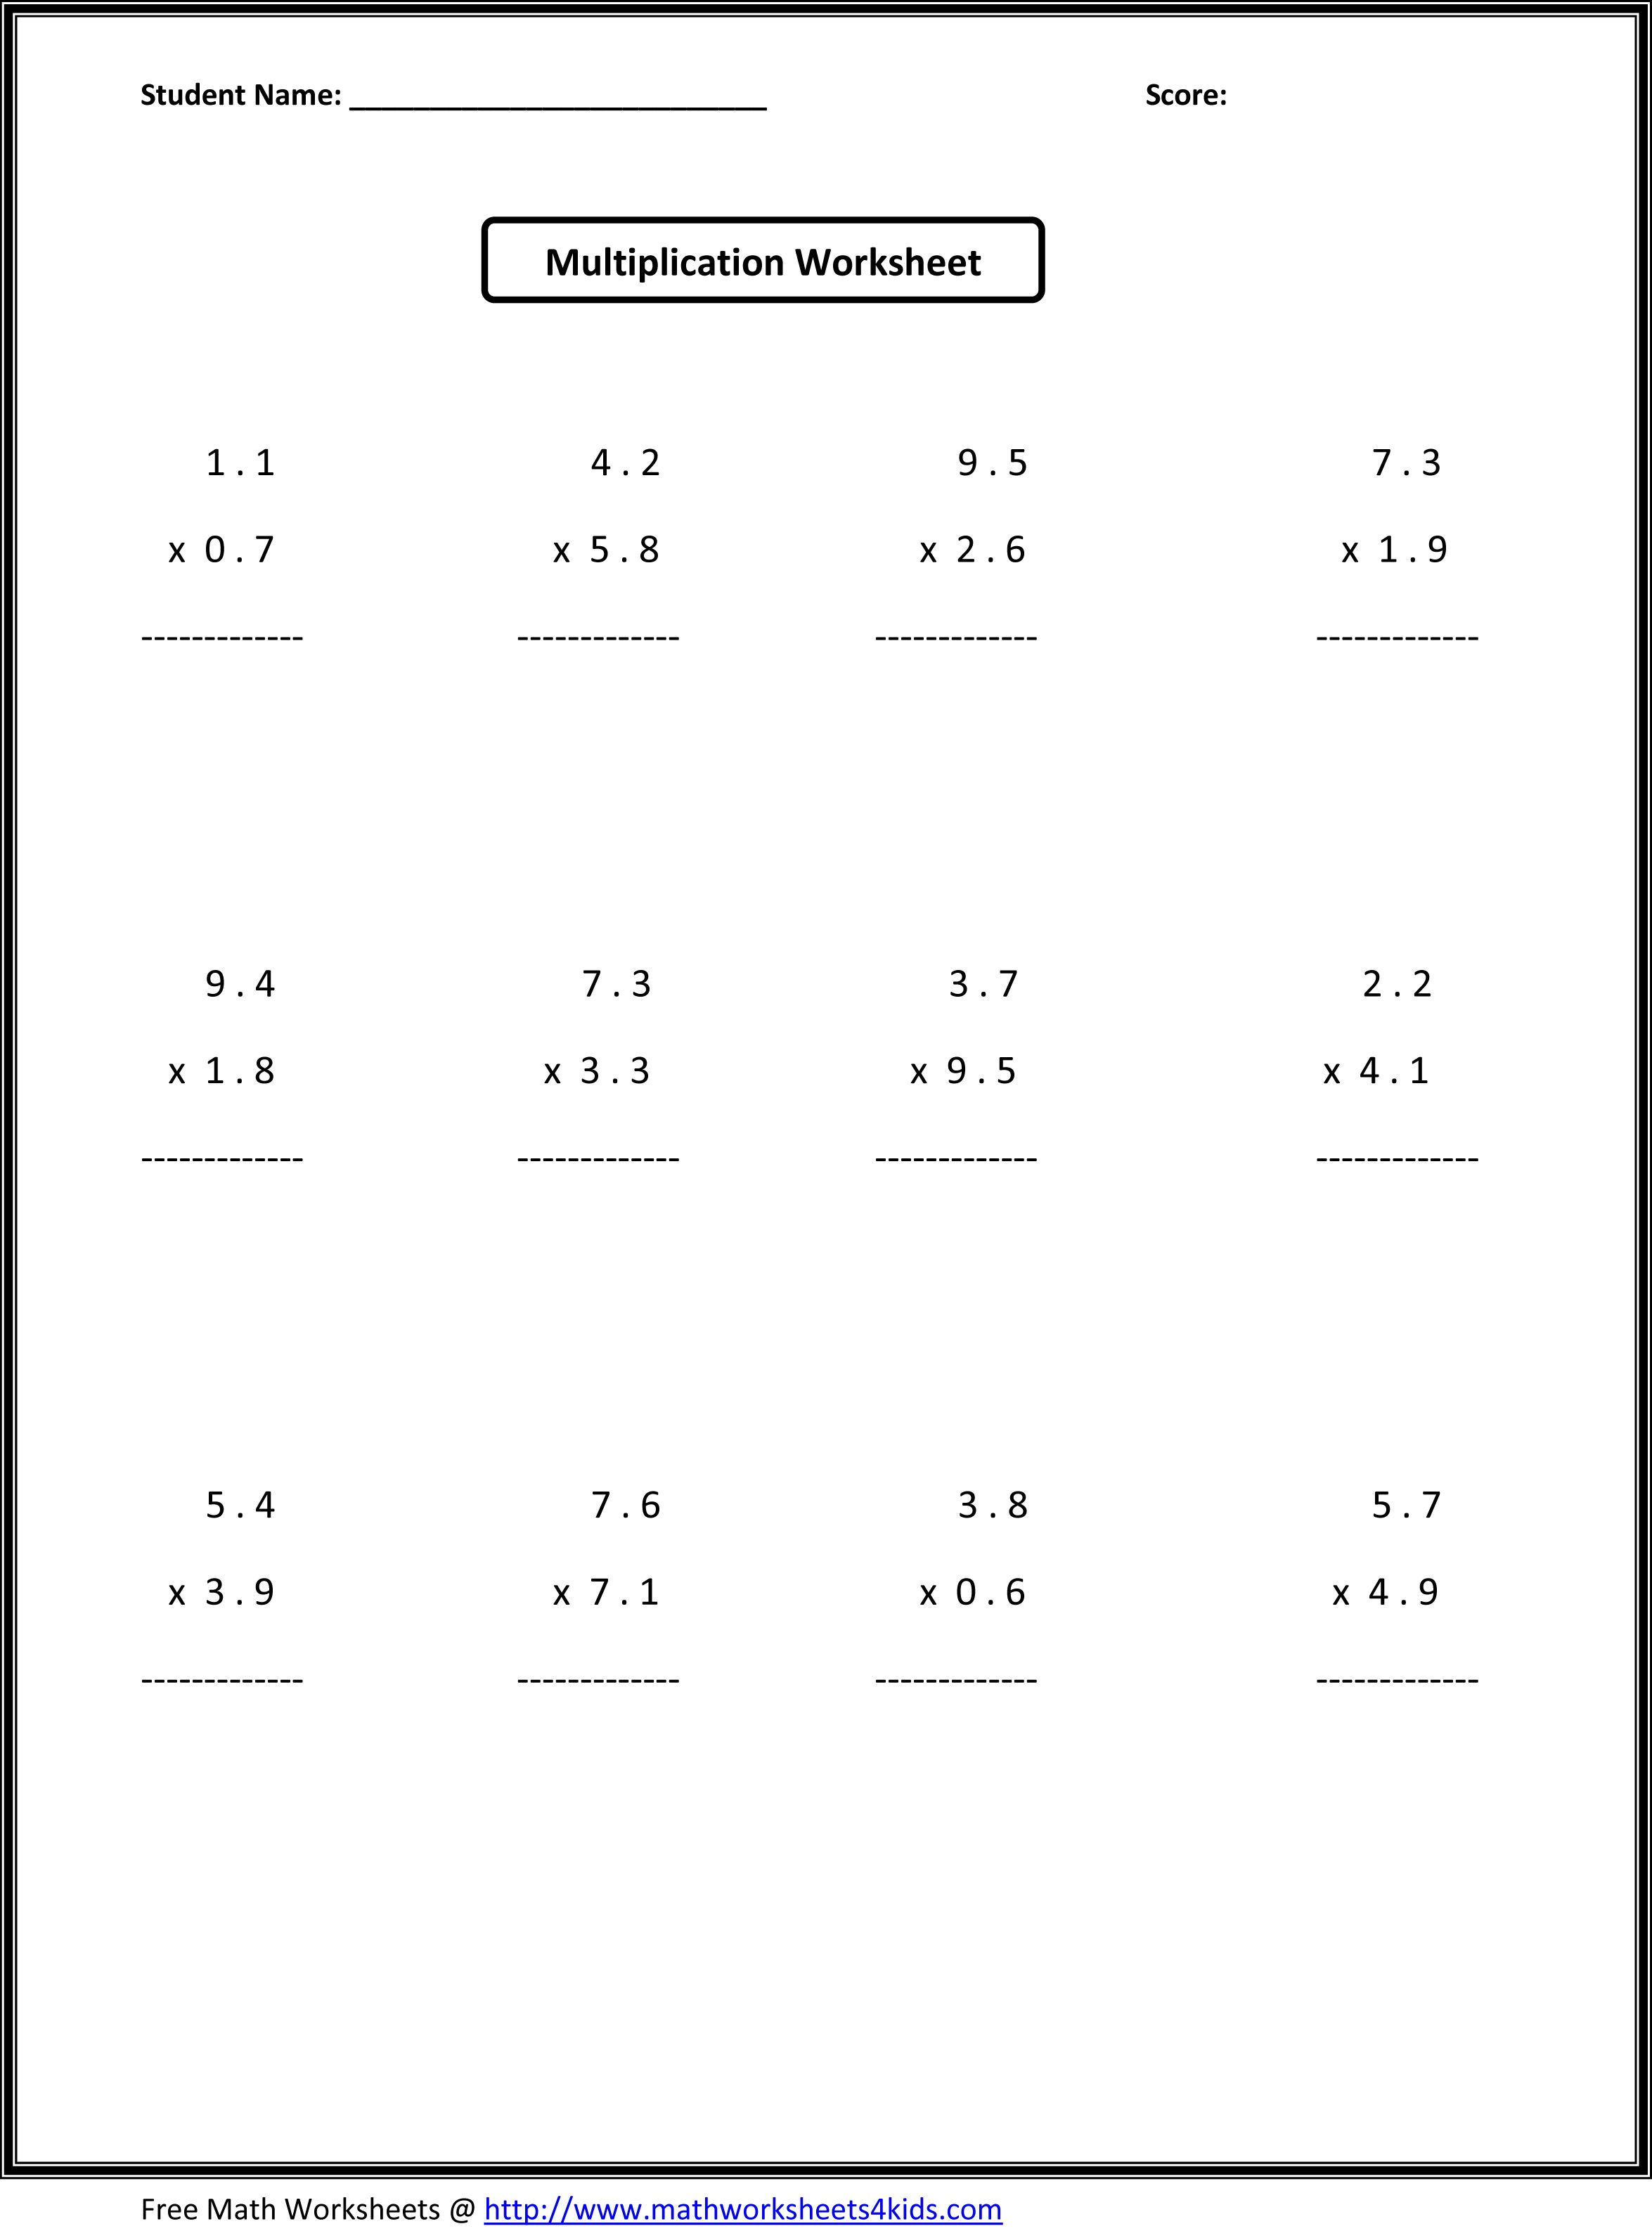 7th grade math worksheets – Grade 7 Maths Worksheets with Answers